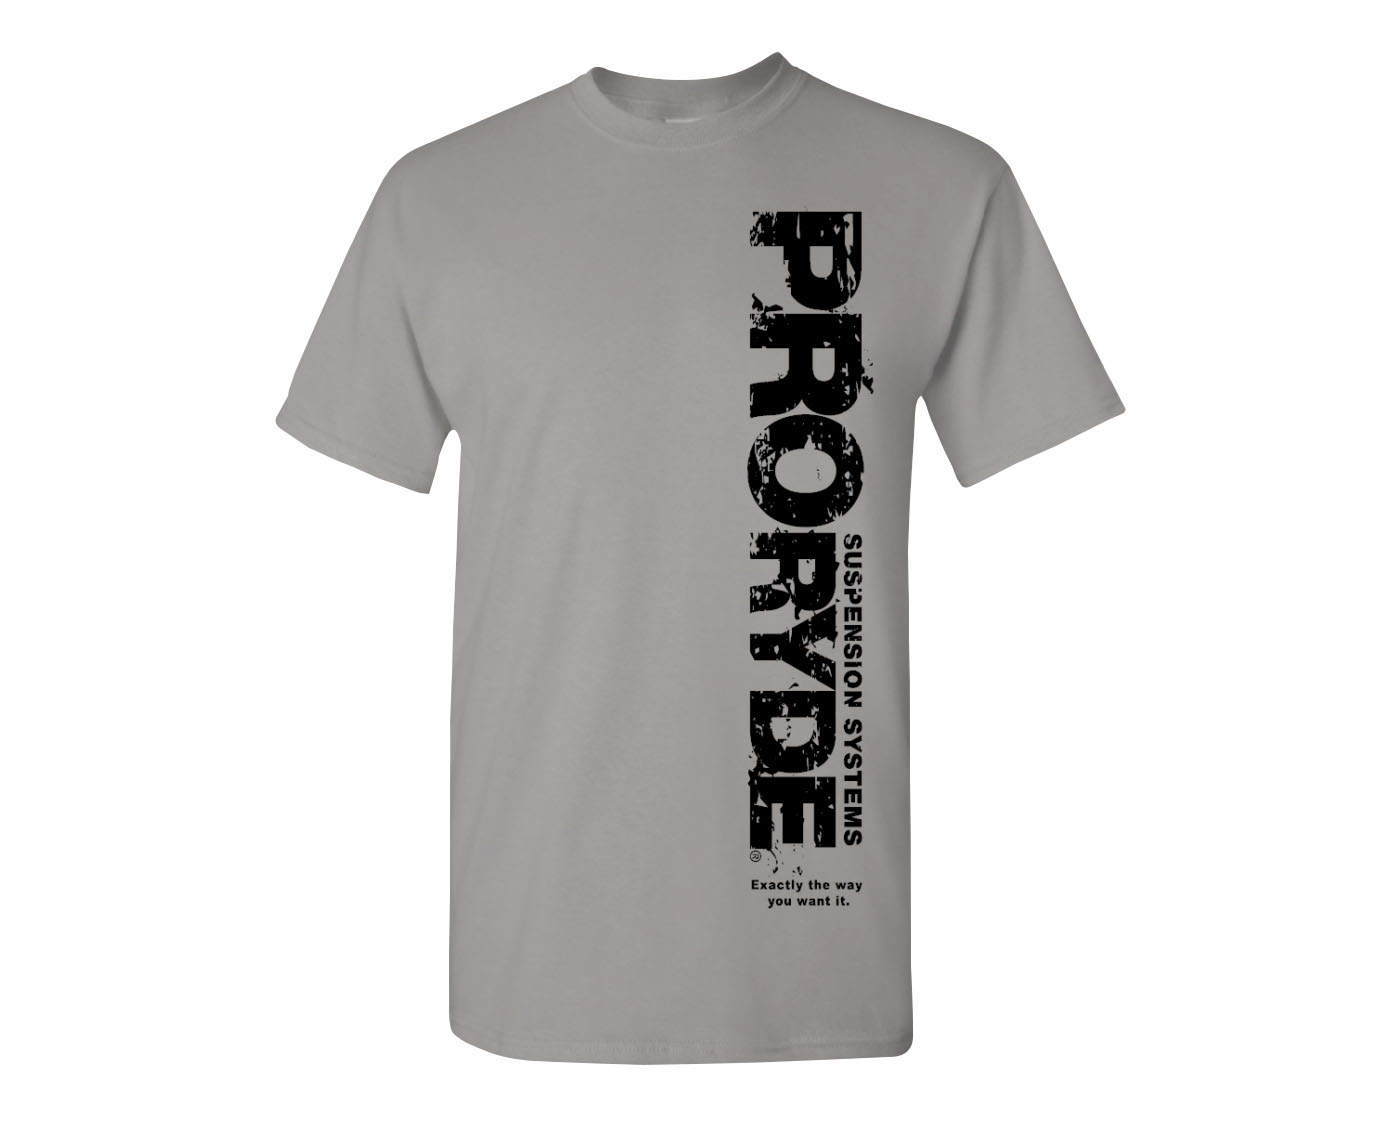 Free T-Shirt Small ProRyde Shirt